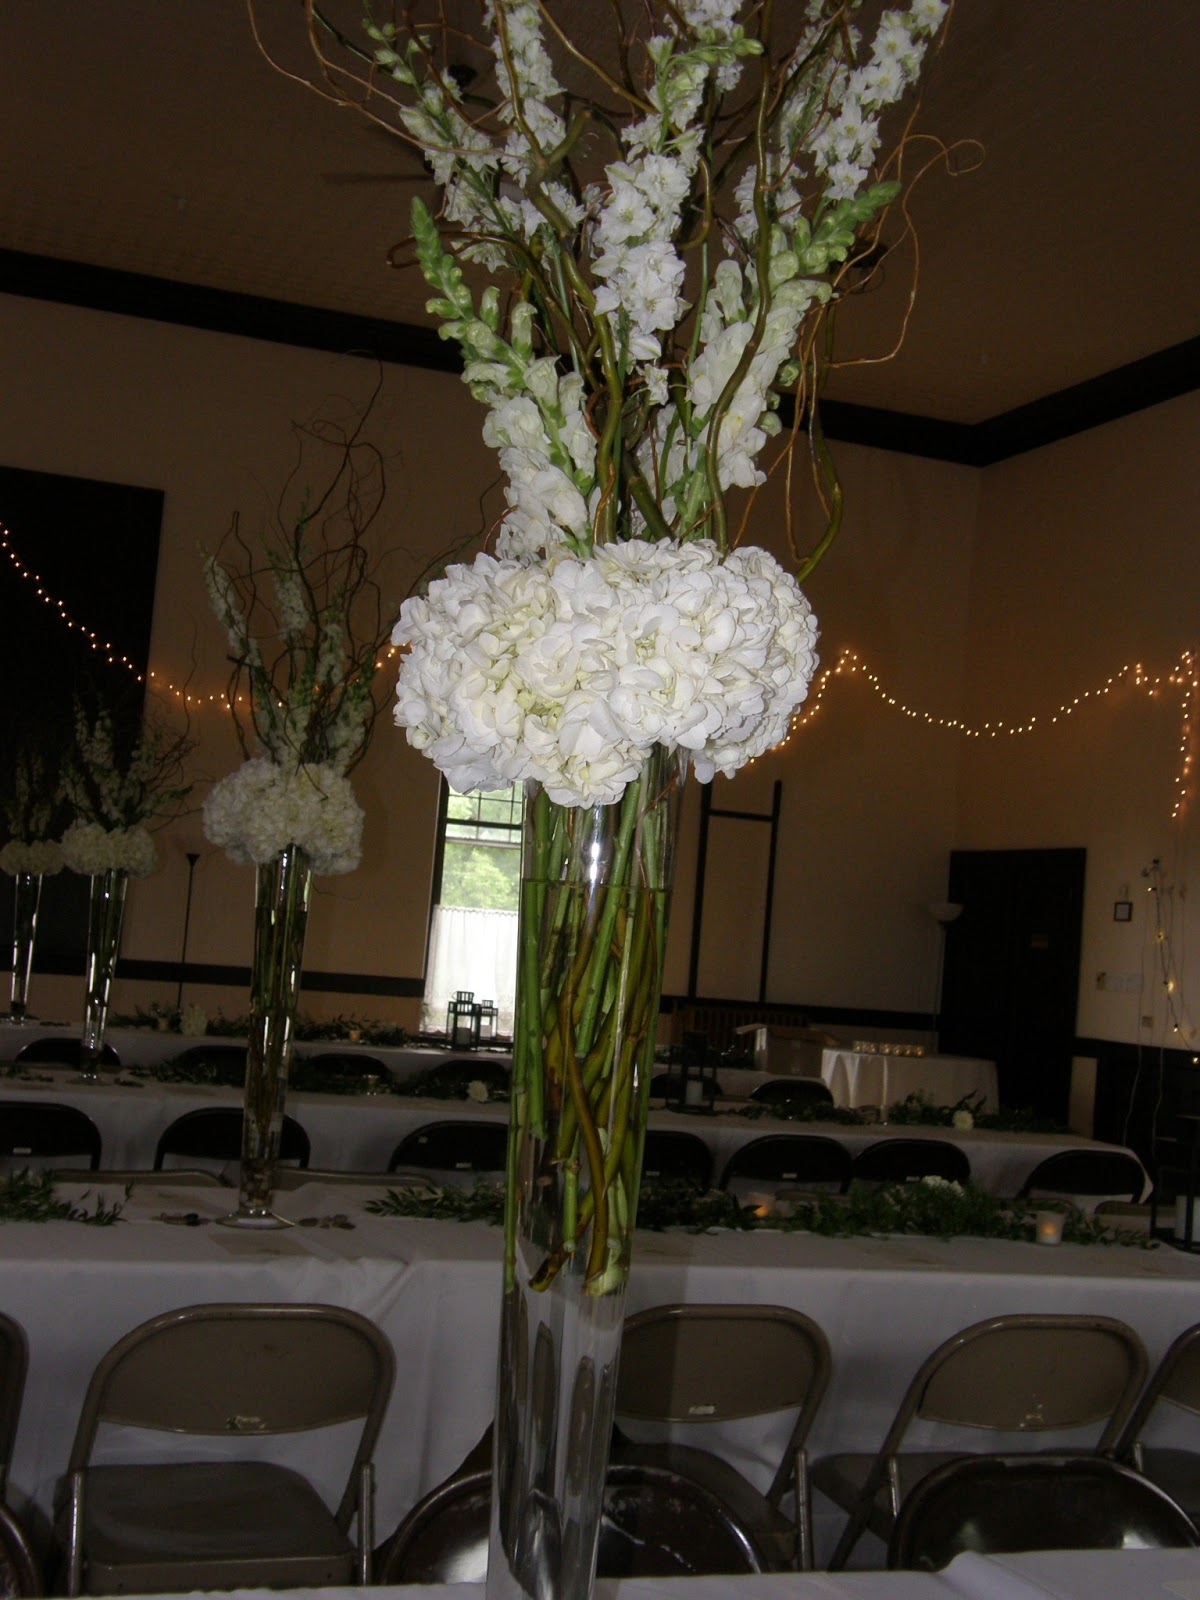 Forget me not floral events june 2013 here is a look at most of the room reviewsmspy